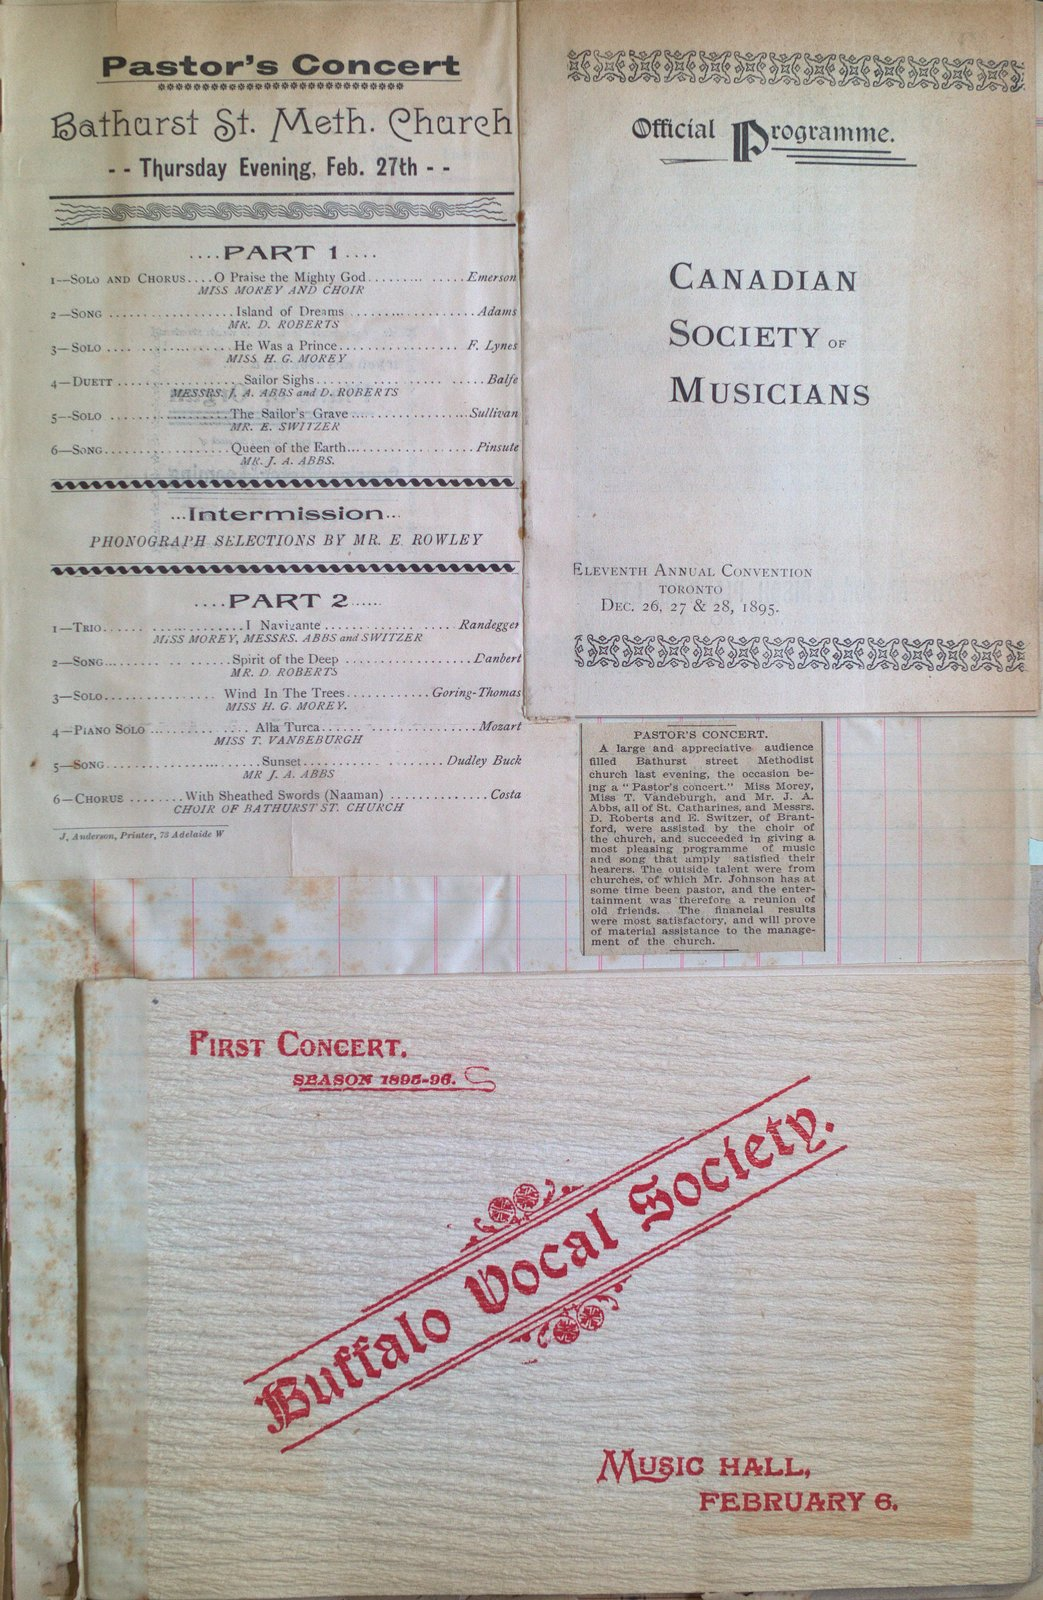 Teresa Vanderburgh's Musical Scrapbook #1 - Concert Programs and Canadian Society of Musicians Convention Program